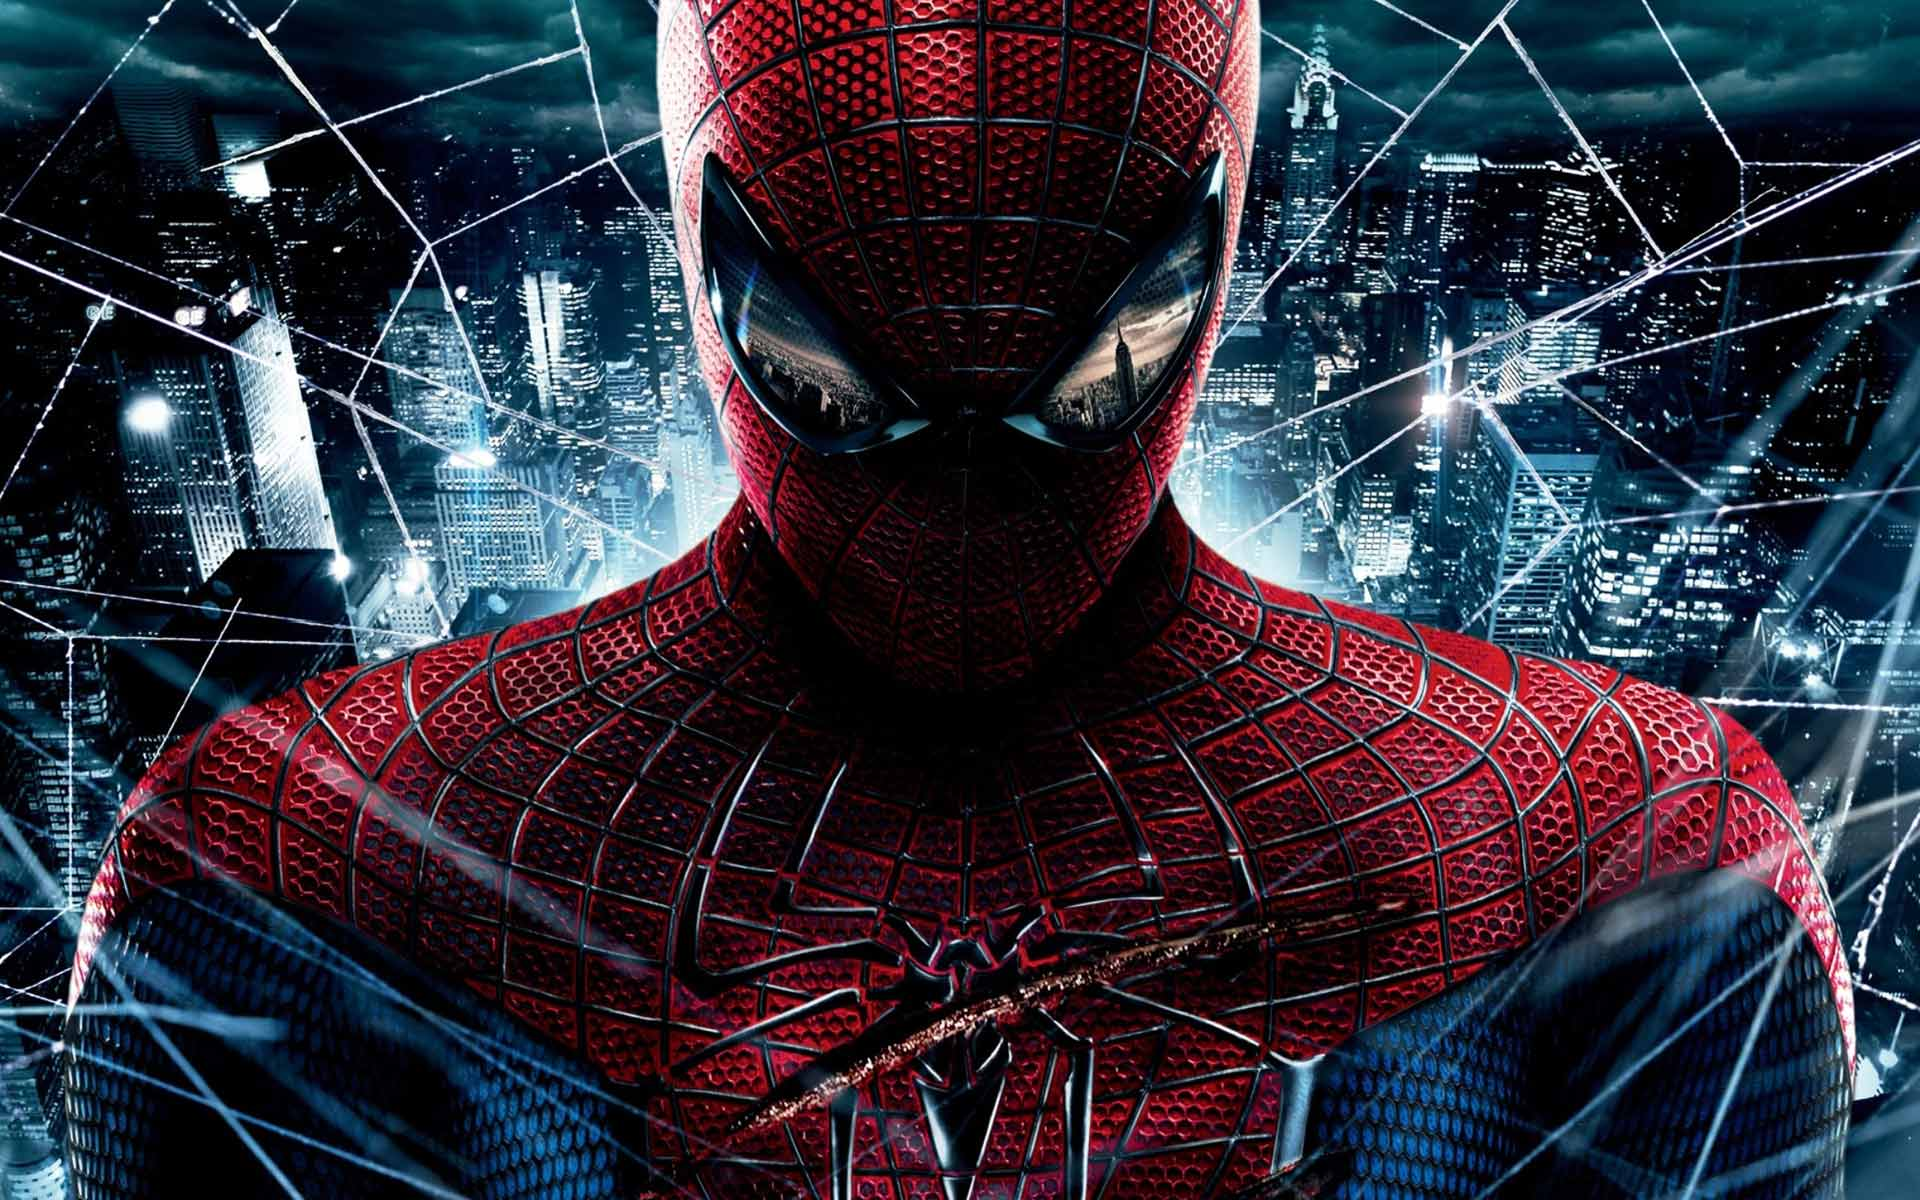 The Amazing Spider-Man 2 widescreen wallpapers